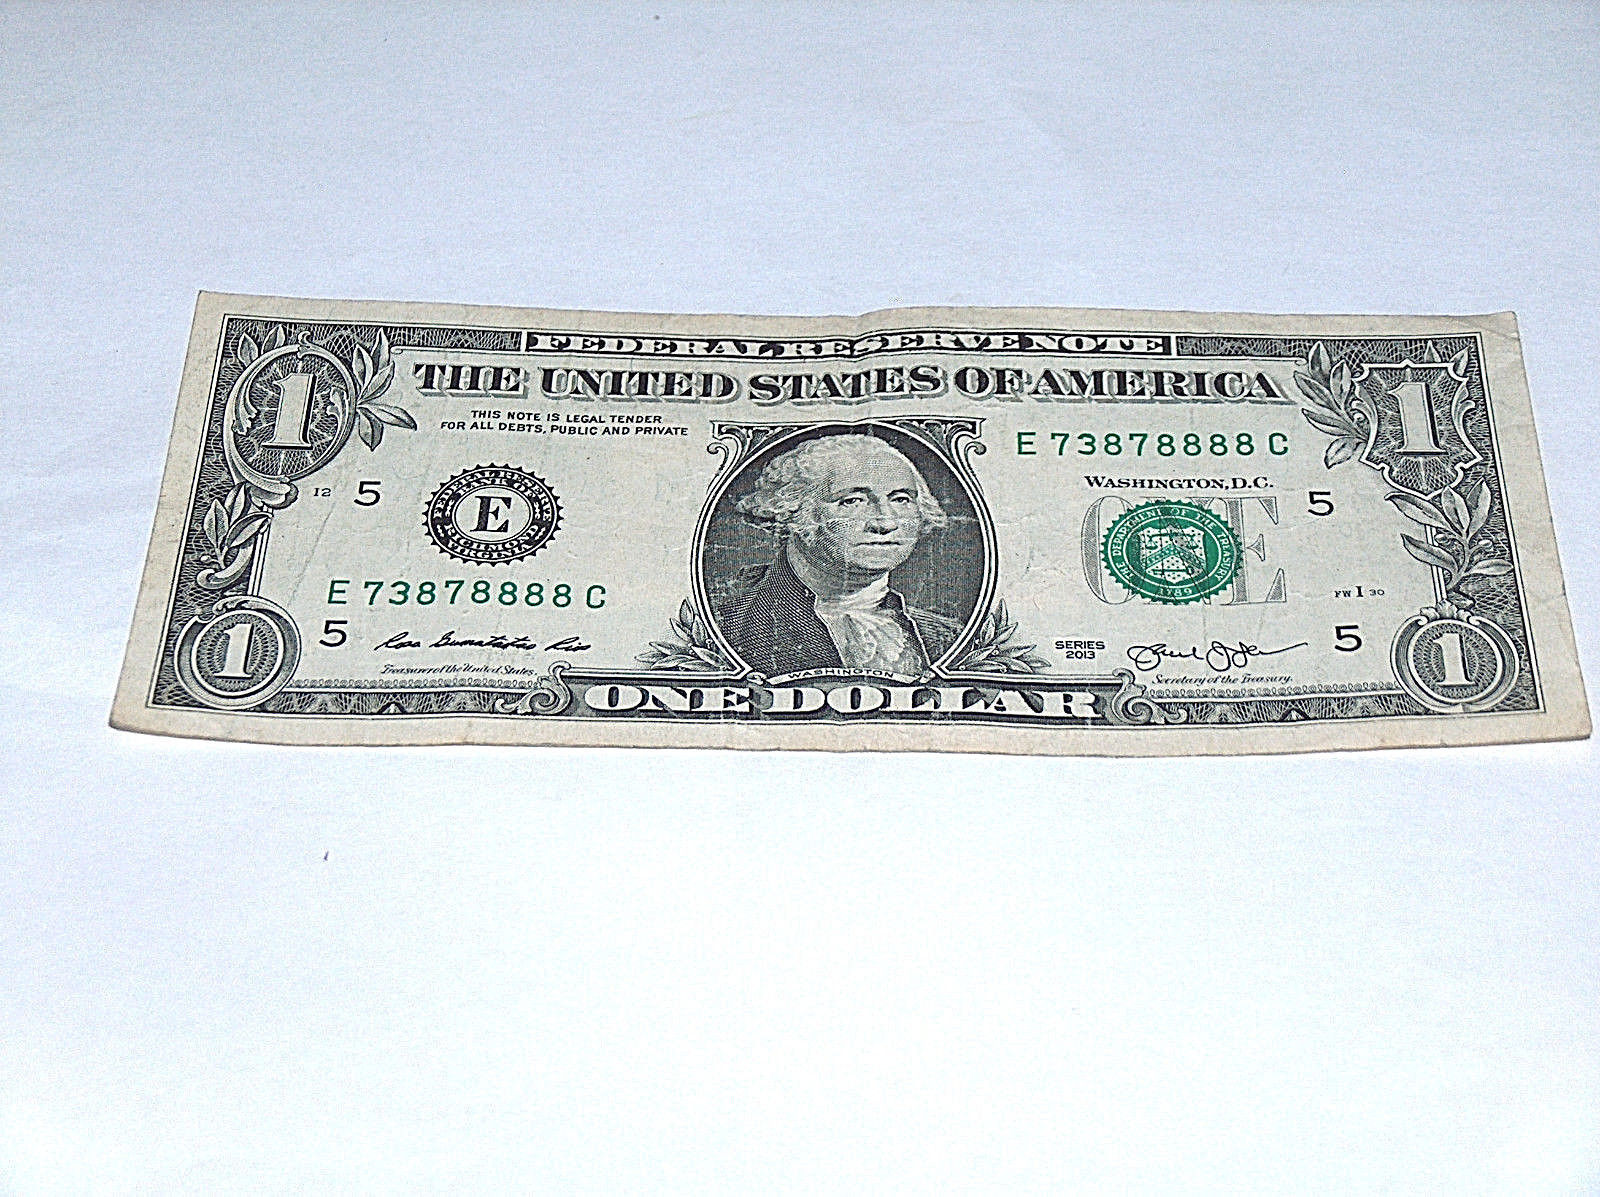 Primary image for 2013 $1 Bill US Bank Note 5-8's Four Of A Kind 8 73878888 Fancy Serial Number